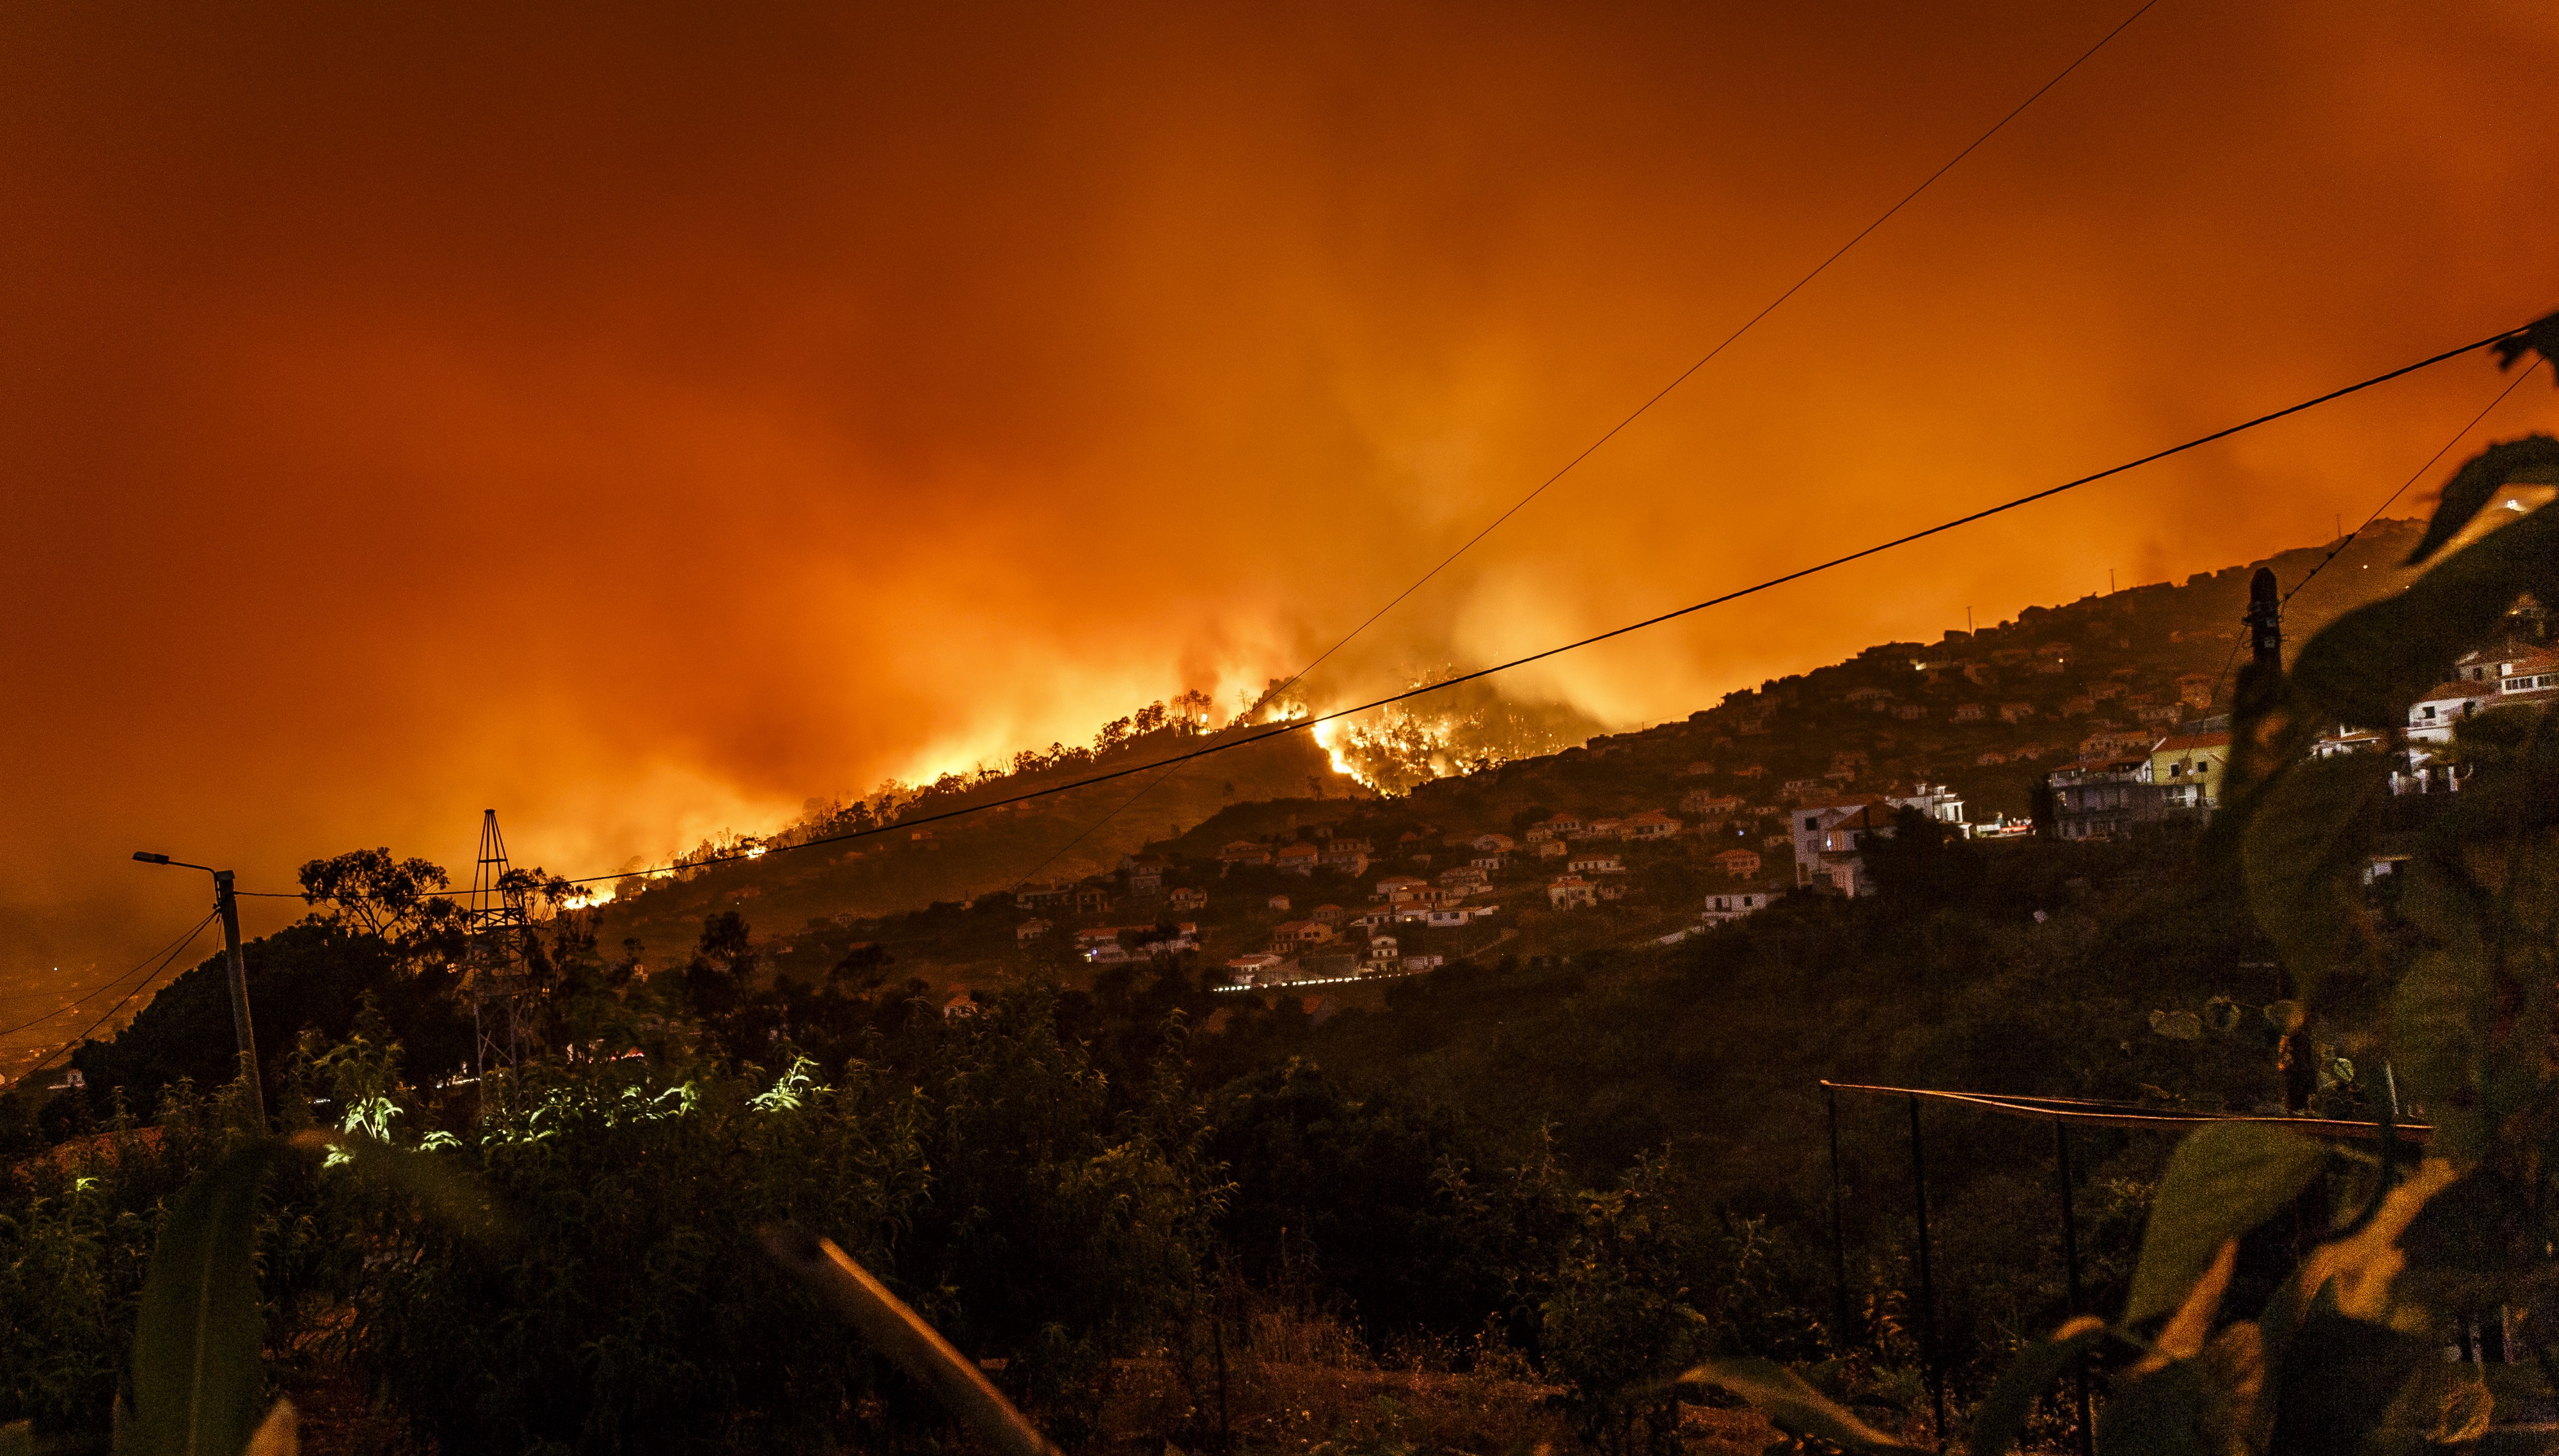 A hillside view on a residential area. There are flames blazing in the background and the sky is red/orange and covered in smoke